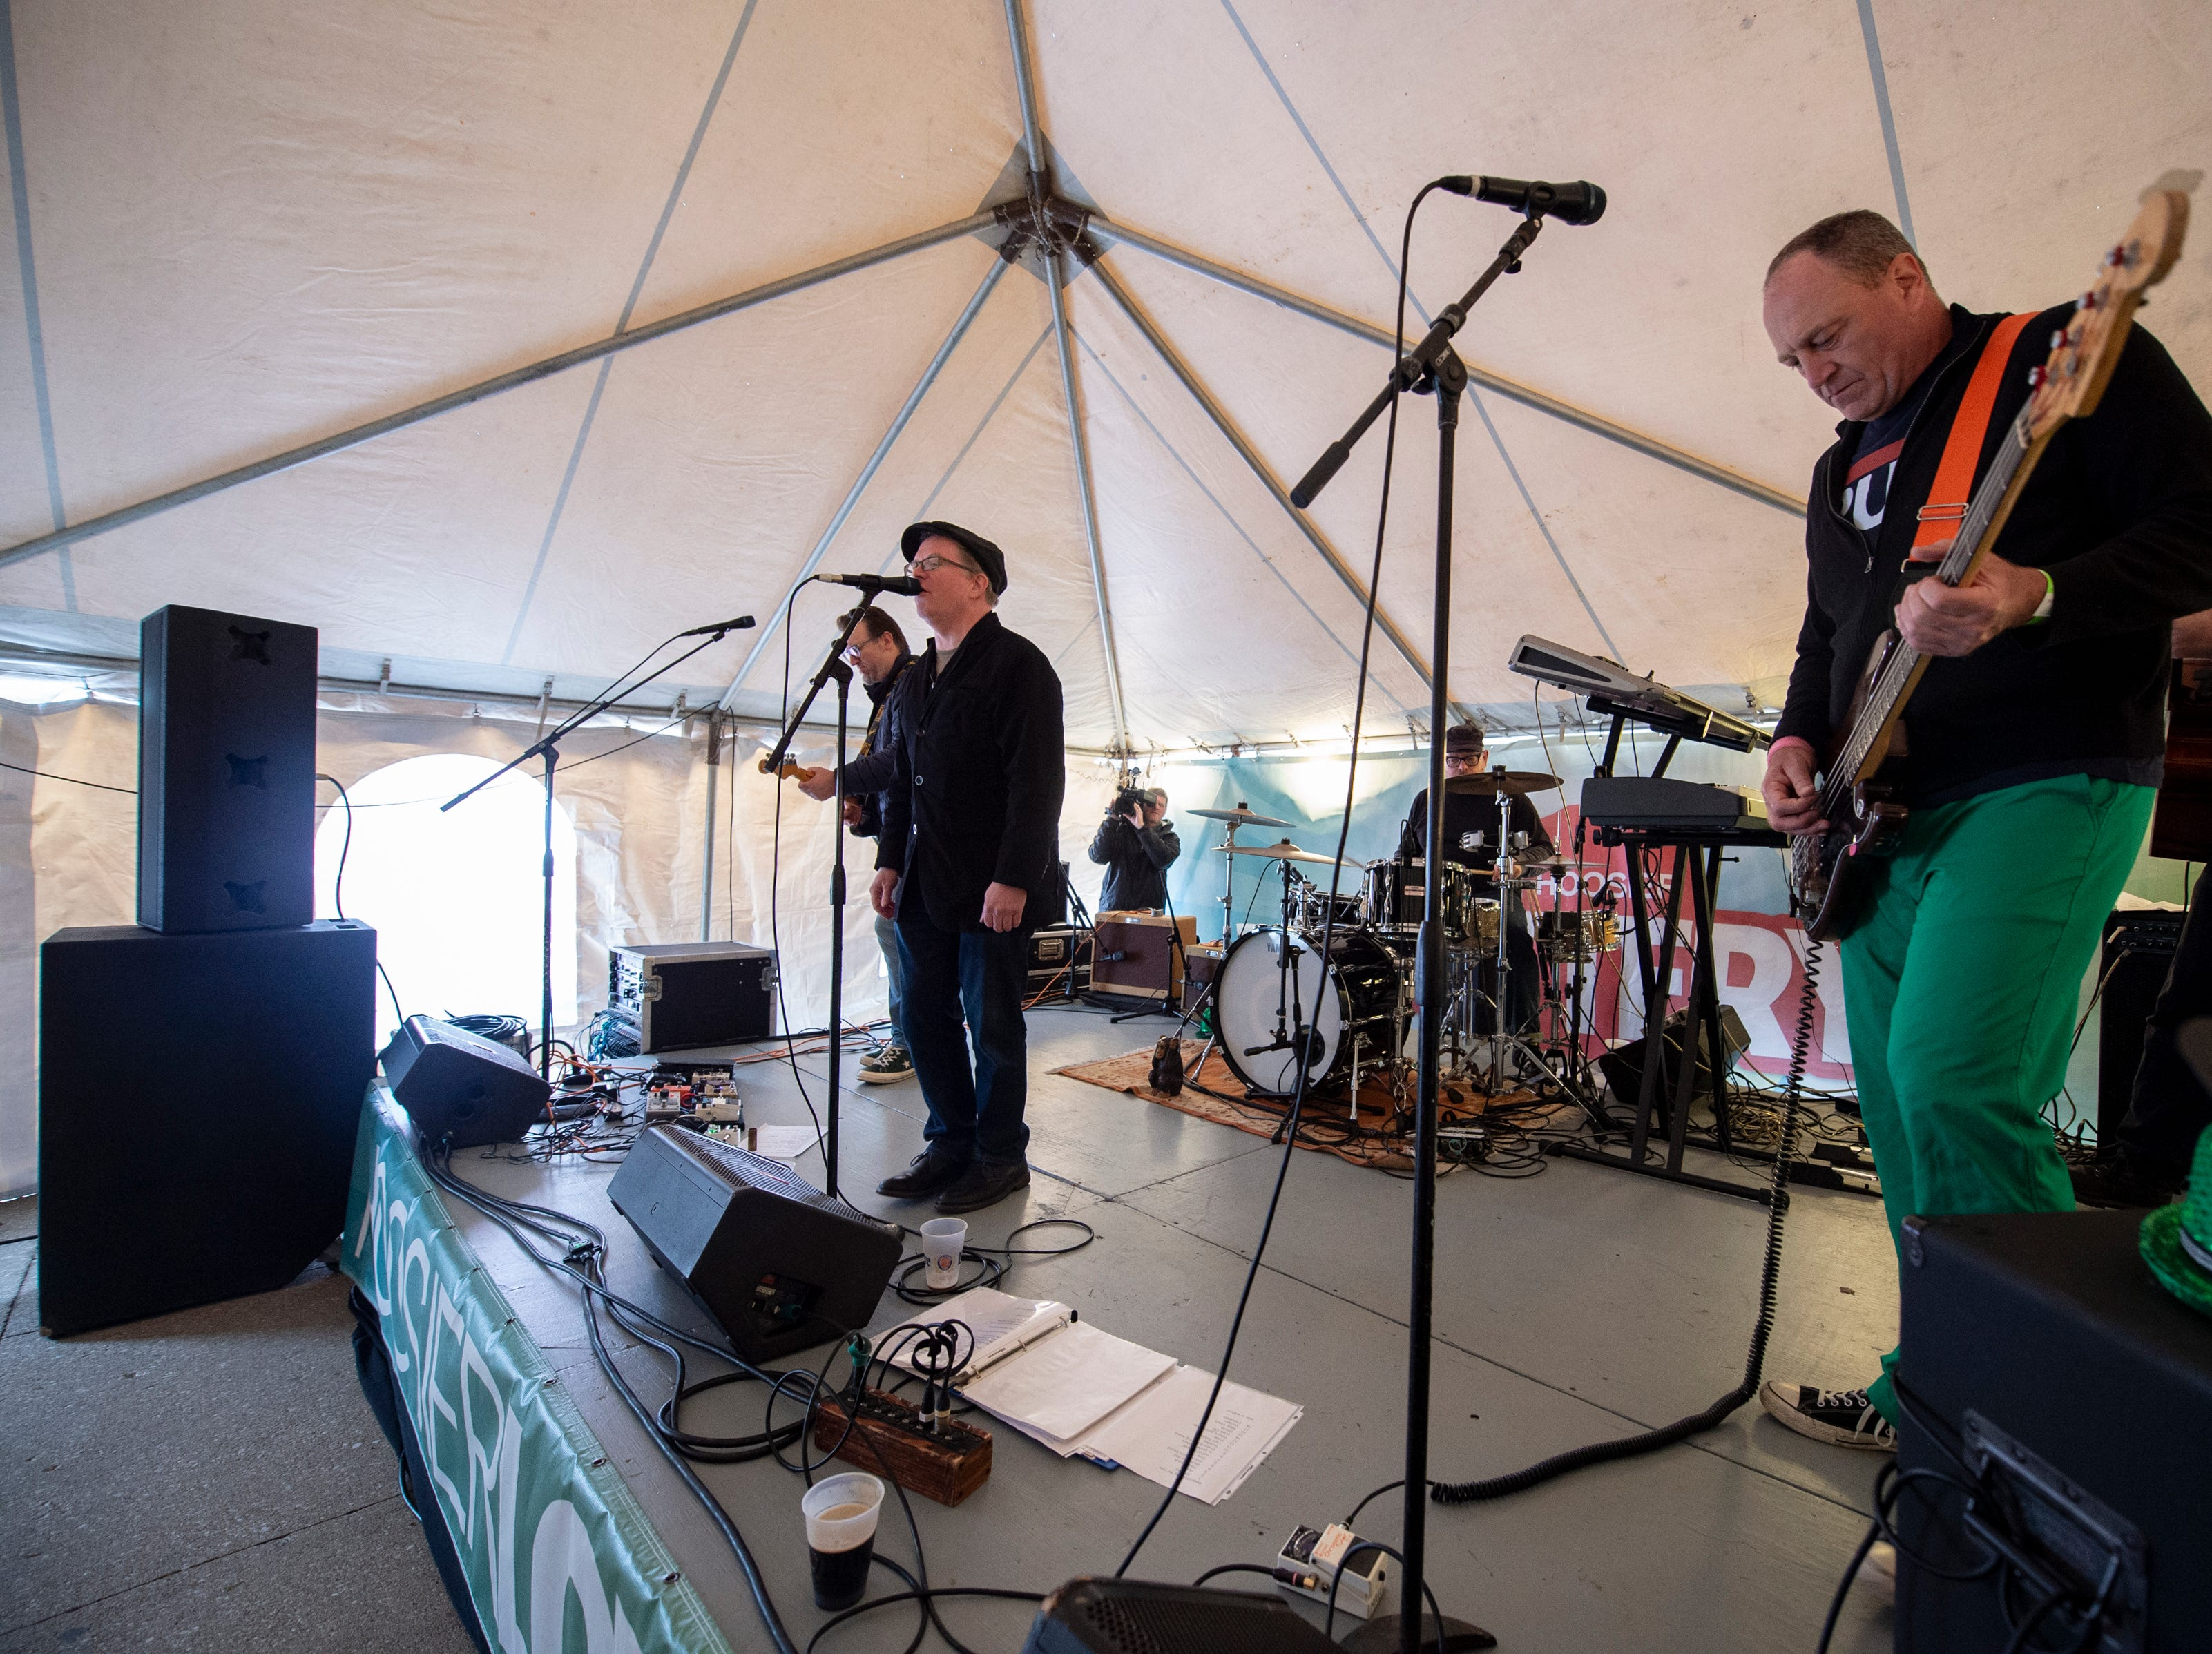 A Beautiful Day, a U2 tribute band, performs on the Hoosier Lottery Imagine That stage.The 39th annual St. Patrick's Day Parade navigated the streets of Indianapolis, Friday, March 15, 2019.